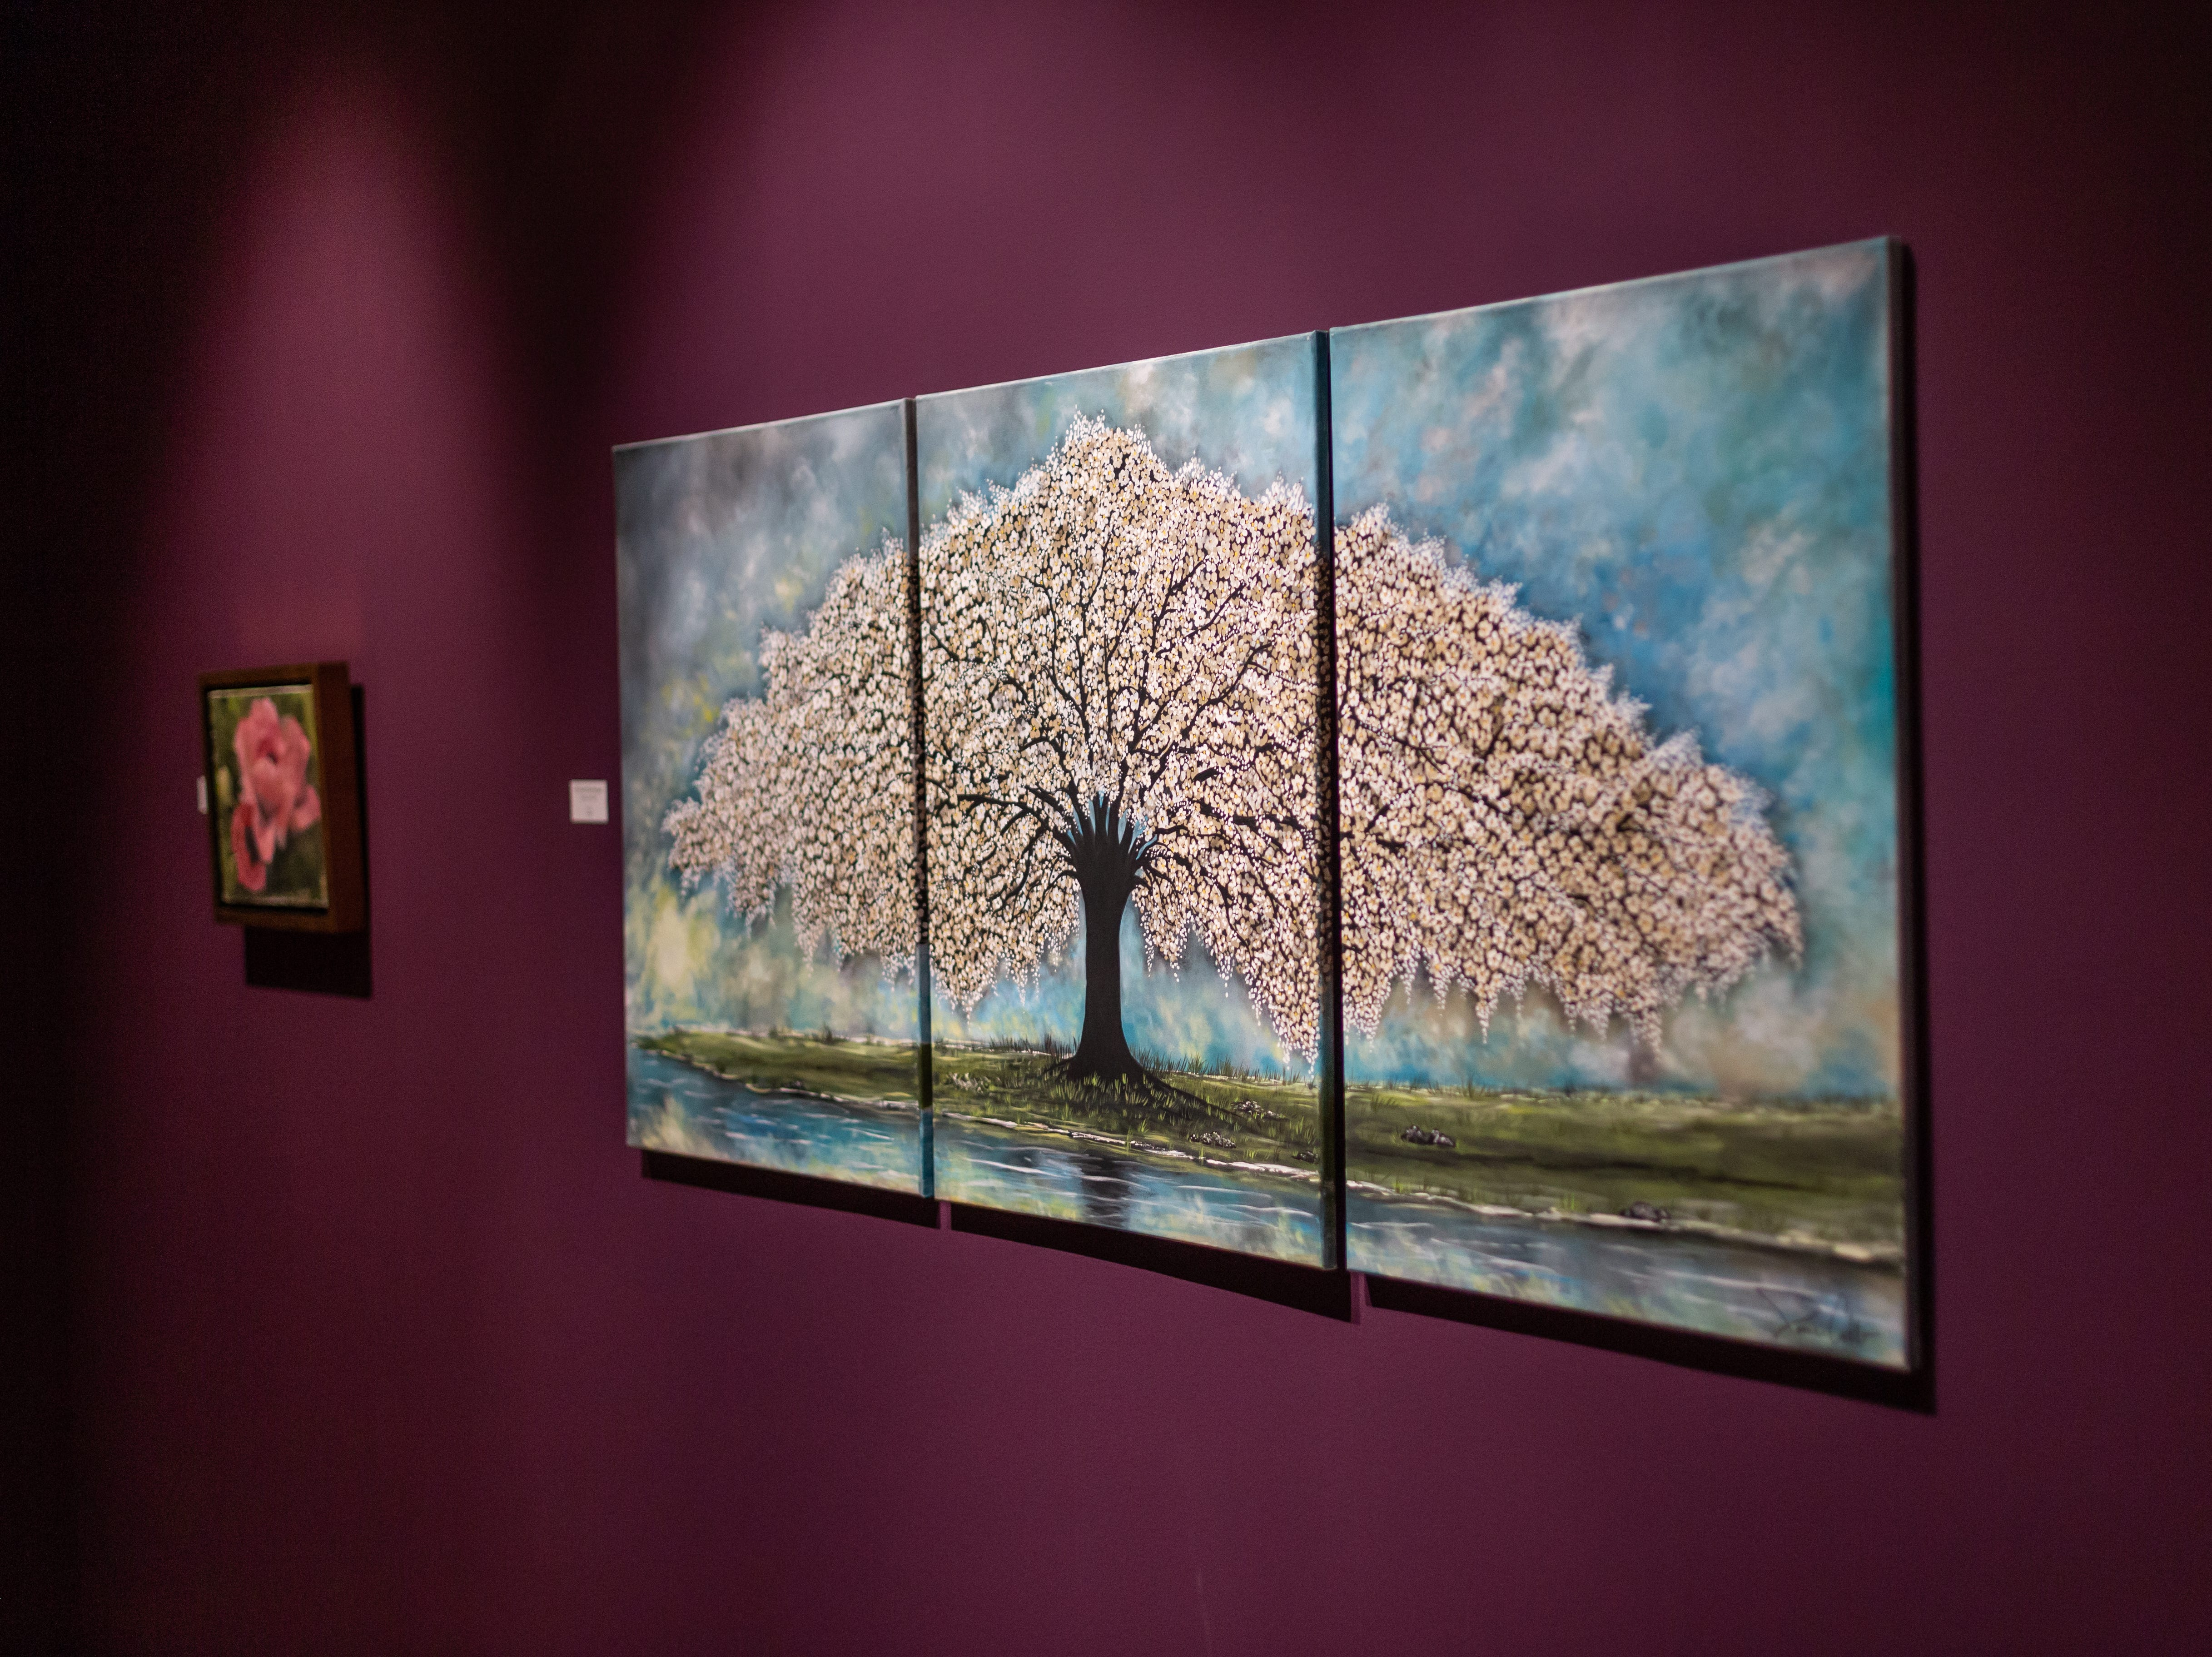 Bloom! festival was held at the Norton Art Gallery March 23, 2019 in Shreveport.